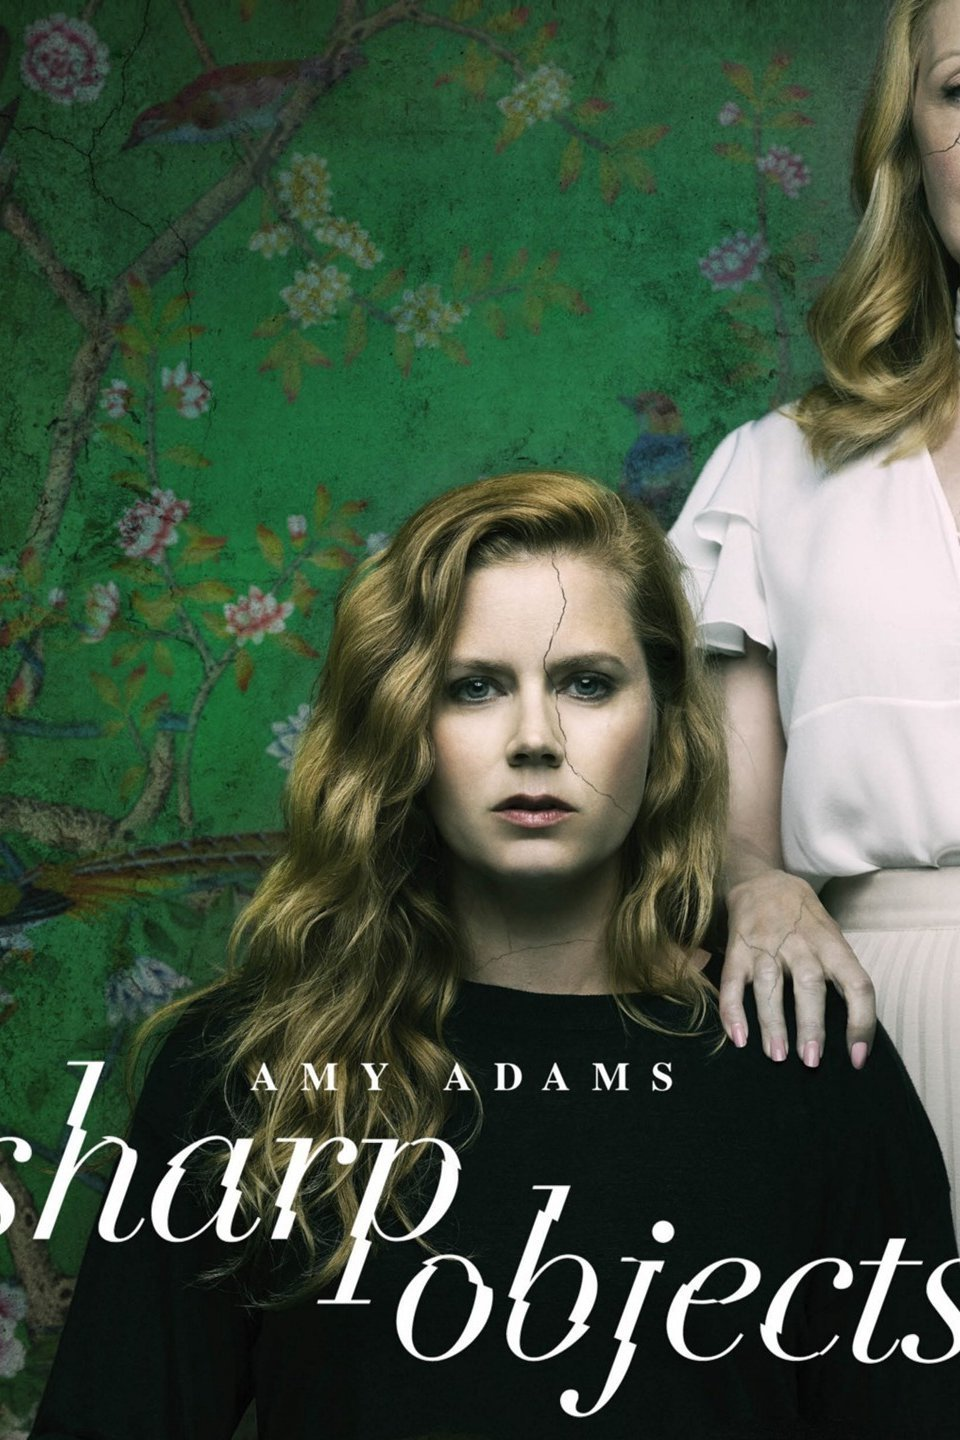 Sharp Objects Season 1 Episode 4 Download HDTV 480p 720p